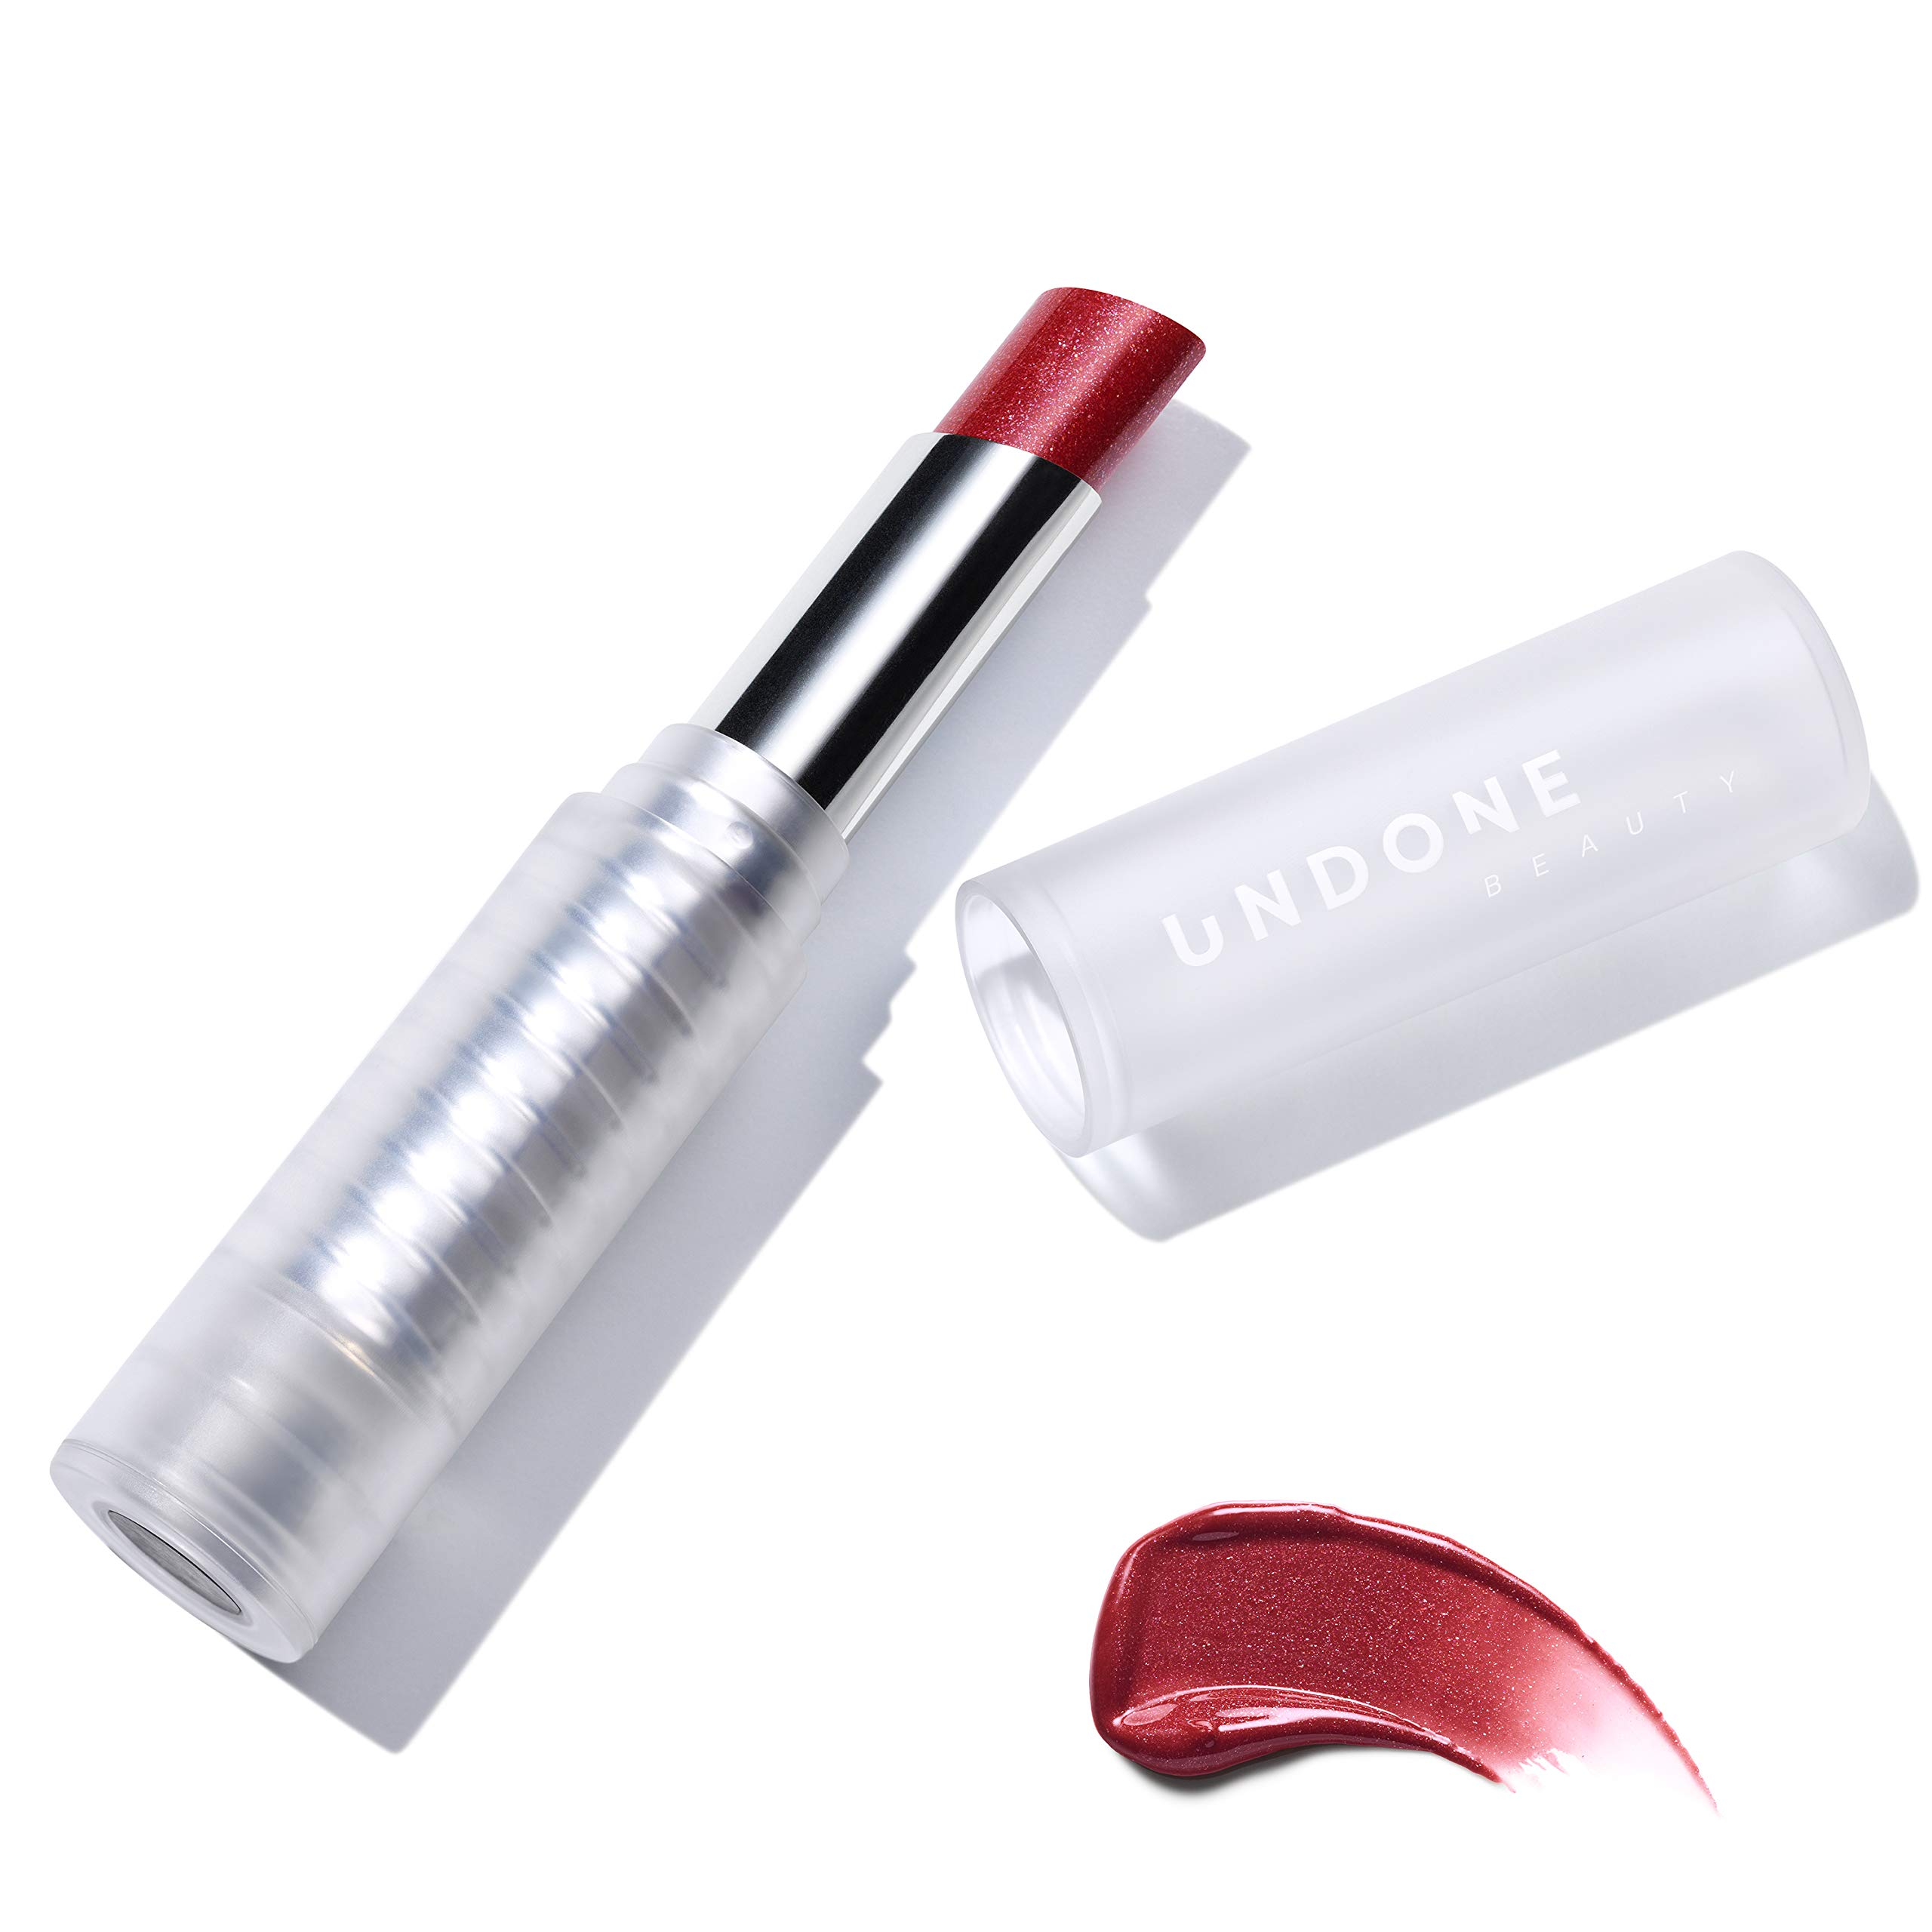 Light Reflecting, Lip Amplifying Lipstick. Sheer, Buildable, Hydrating Color - UNDONE BEAUTY Light On Lip. Aloe, Coconut & Volume Enhancing Pigment. Paraben, Vegan & Cruelty Free. ROYAL RED